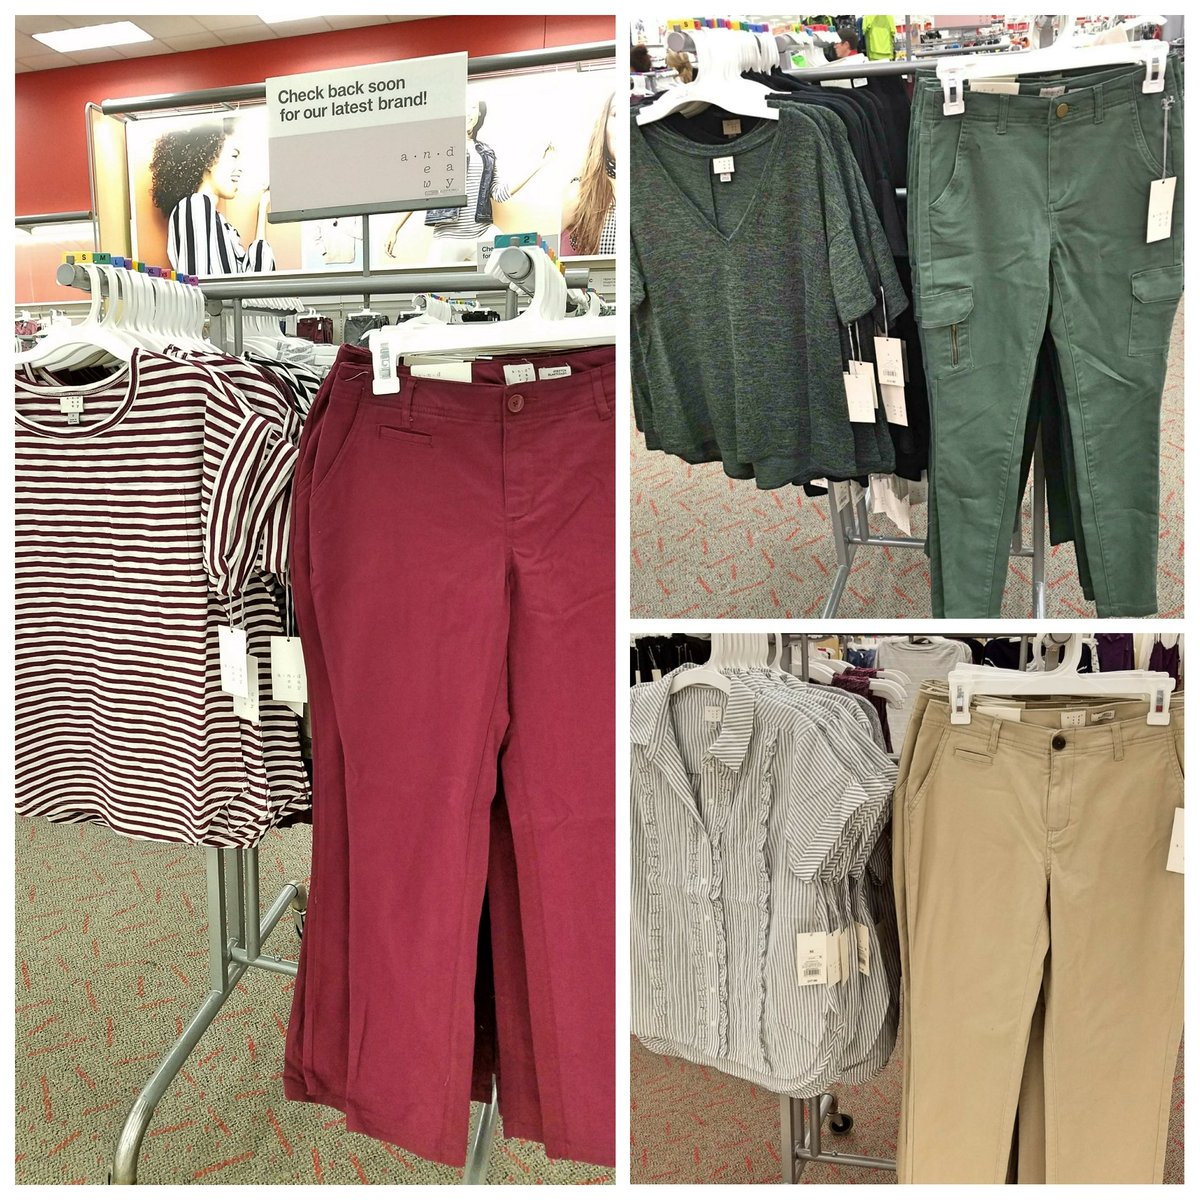 It&#39;s &quot;A New Day&quot; at League City Target! Come check out the early release of our new Target exclusive brand! #T2320ModelStore #D303 #G392<br>http://pic.twitter.com/VjFhO8HsJQ